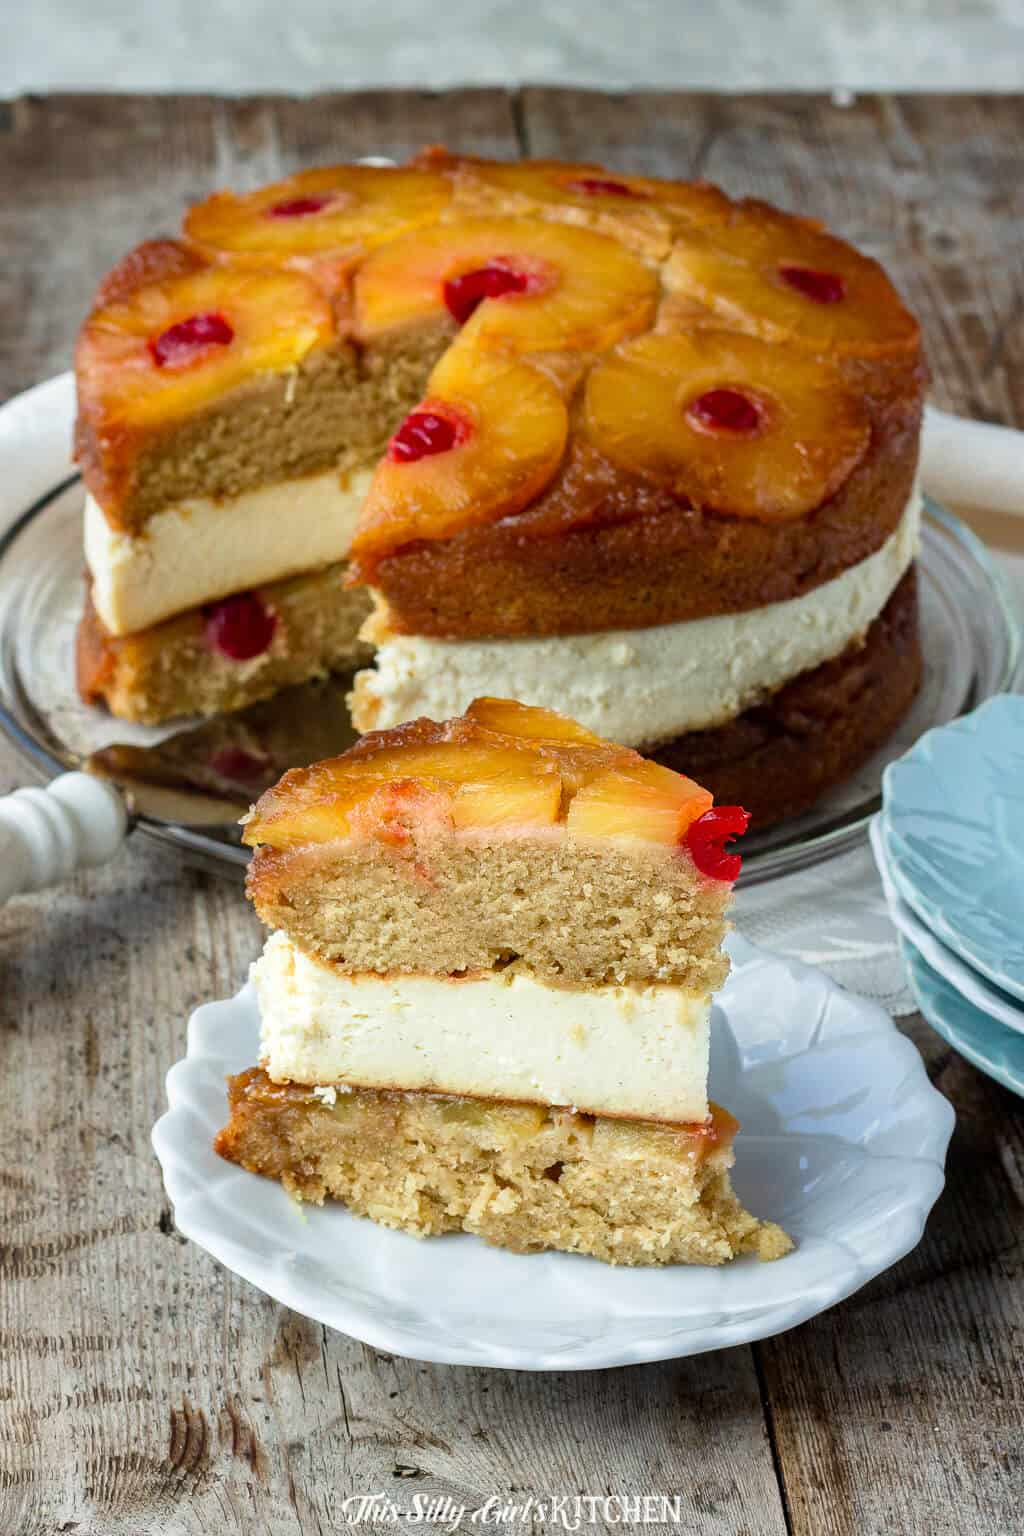 Pineapple Upside Down Cheesecake, two layers of buttery pineapple upside-down cake stuffed with pineapple cheesecake, just like The Cheesecake Factory... but homemade! #recipe from thissillygirlskitchen.com #cheesecake #pinappleupsidedowncake #pineappleupsidedowncheesecake #cheesecakefactory